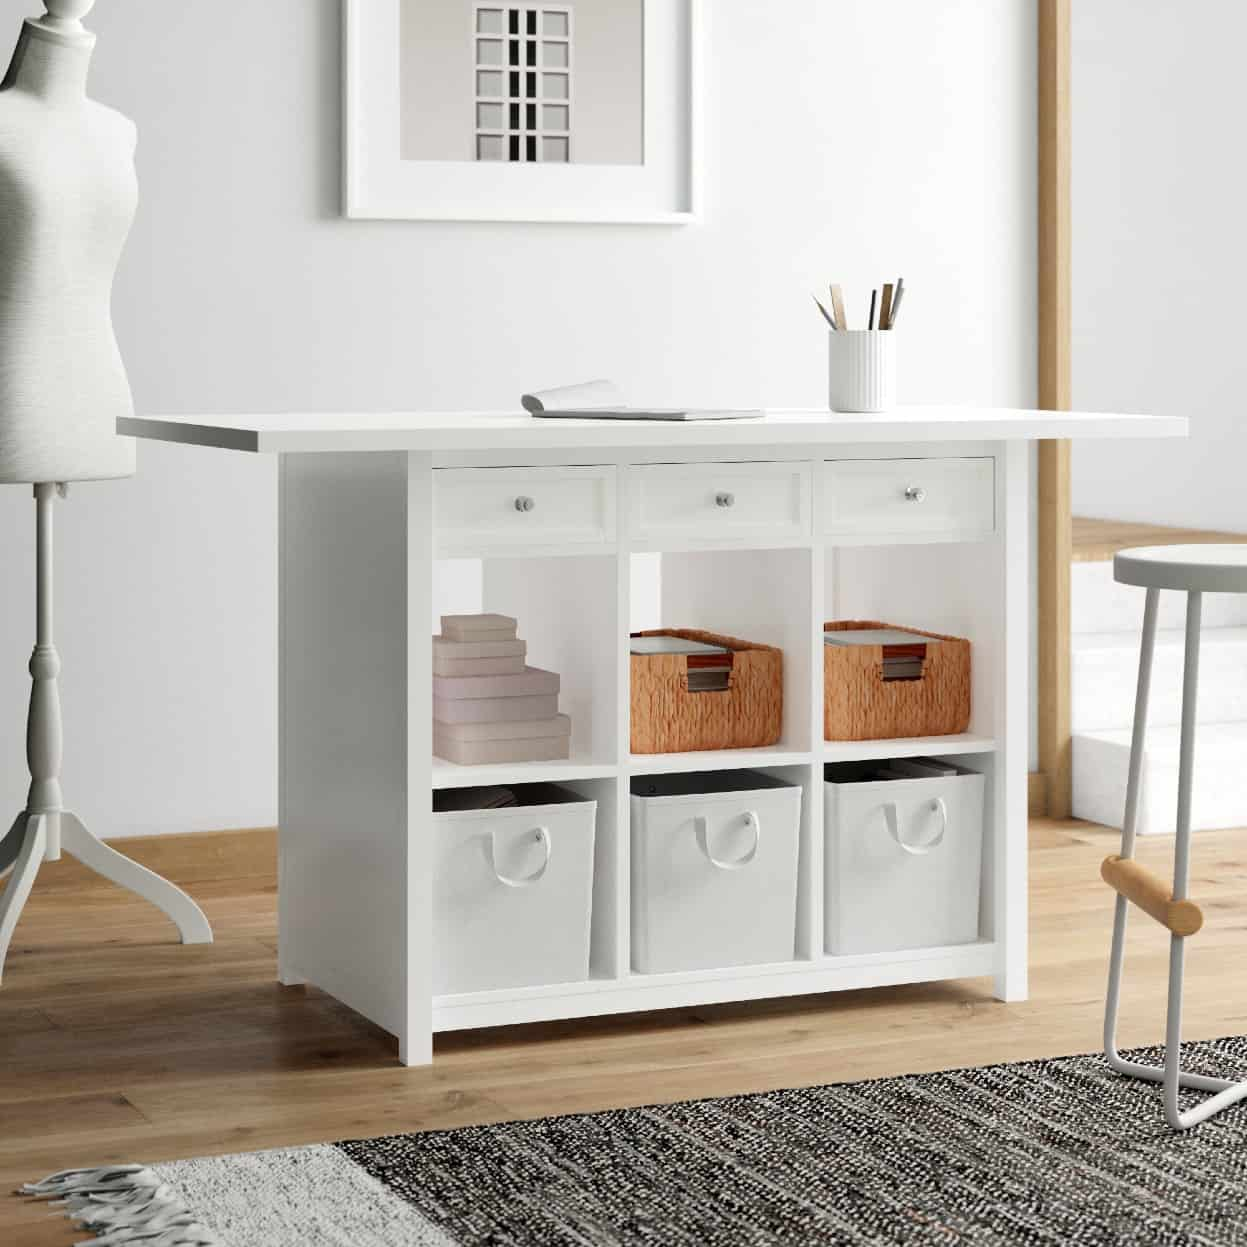 Upgrade Your Whole Sewing Room with a Storage and Craft Table